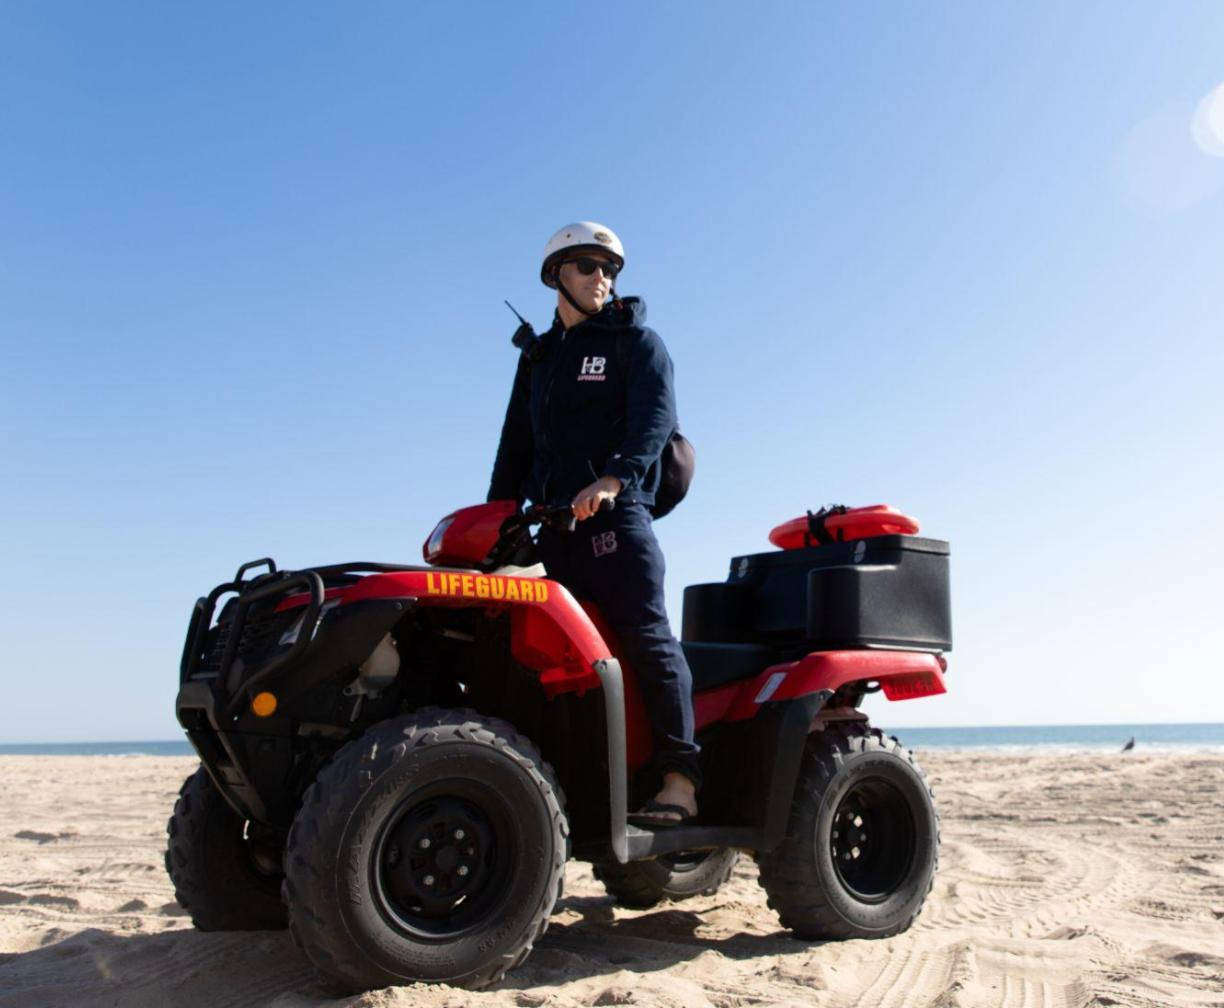 4 by 4 rescue vehicle on the beach